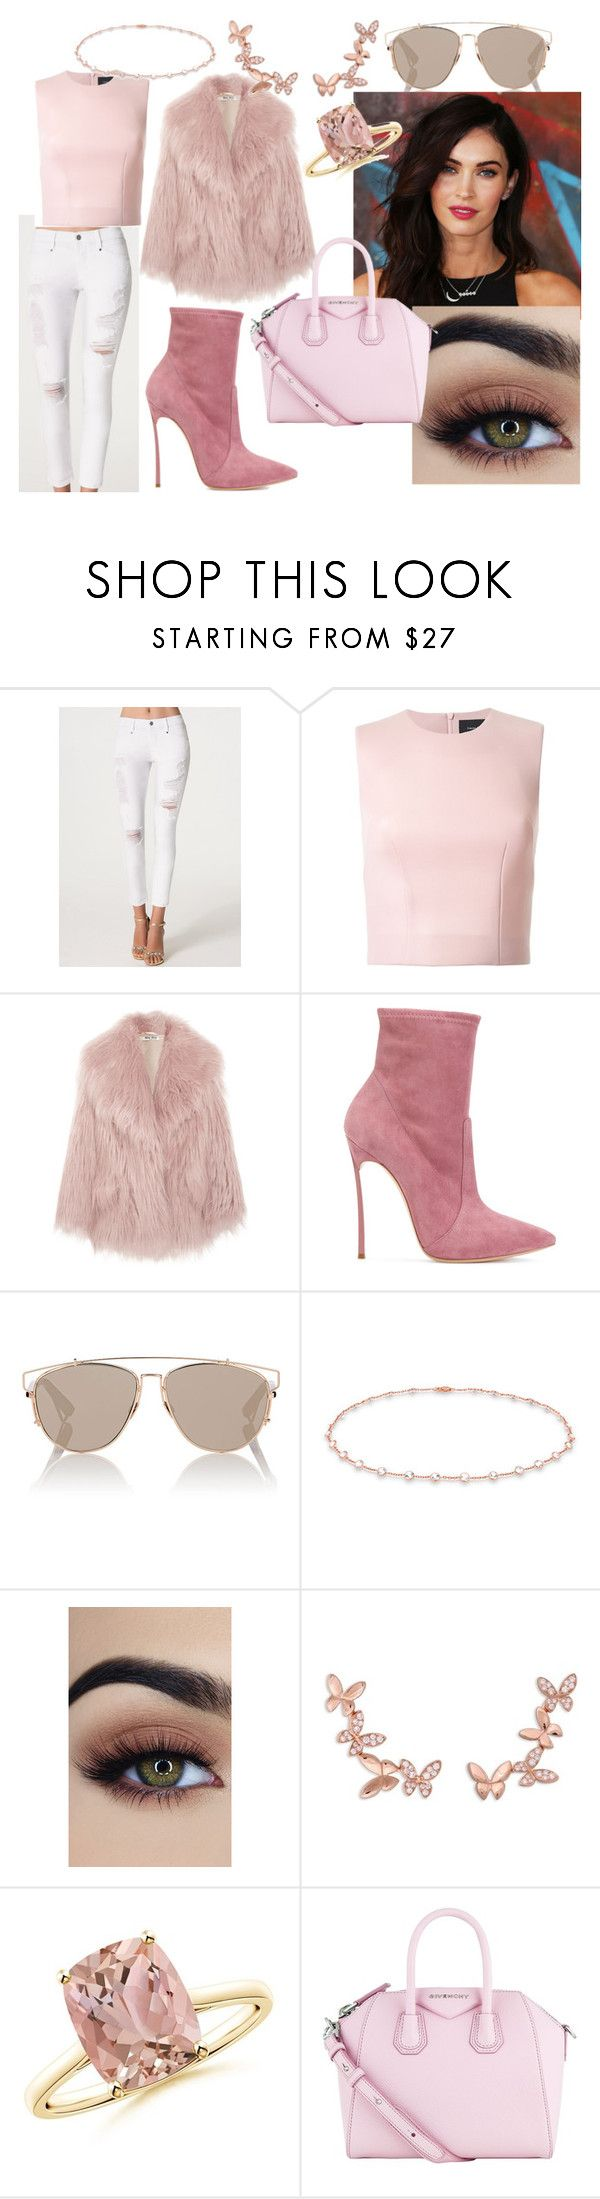 """""""Brittney"""" by mrstomlinson974 on Polyvore featuring Bebe, Simone Rocha, Miu Miu, Casadei, Christian Dior, Anne Sisteron, Anyallerie and Givenchy"""